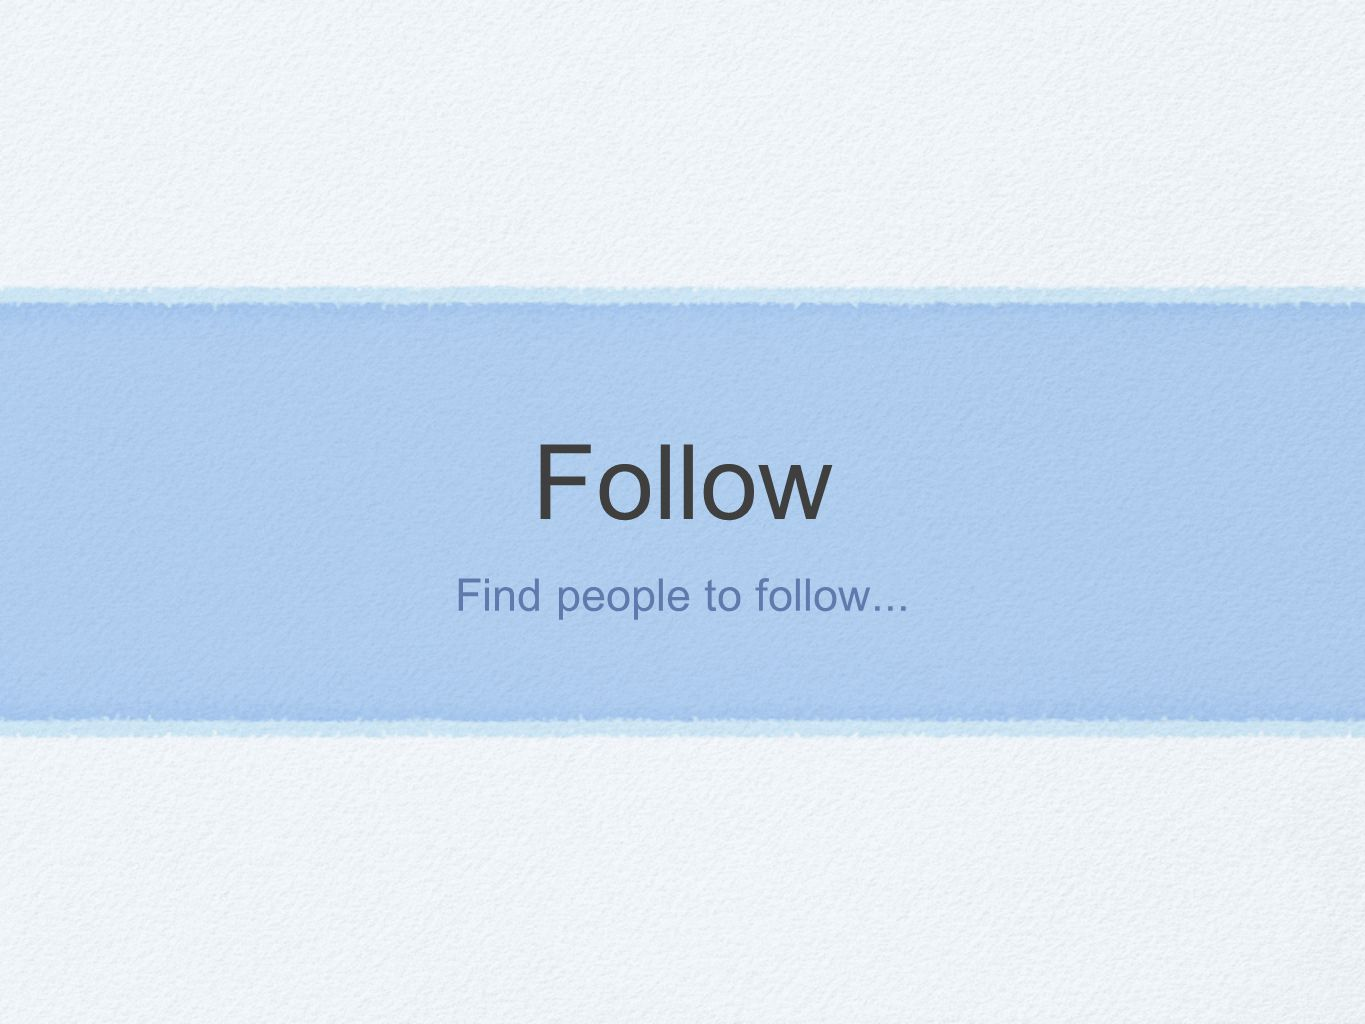 Follow Find people to follow...